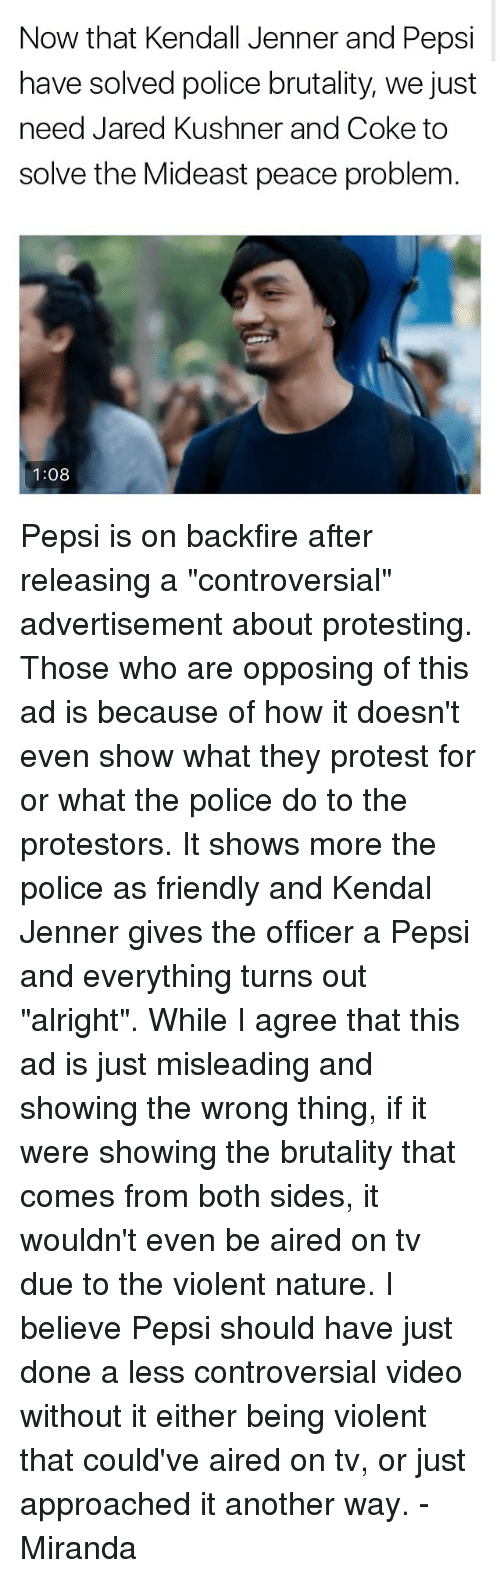 """Kendall Jenner, Memes, and Police: Now that Kendall Jenner and Pepsi  have solved police brutality, we just  need Jared Kushner and Coke to  solve the Mideast peace problem  1:08 Pepsi is on backfire after releasing a """"controversial"""" advertisement about protesting. Those who are opposing of this ad is because of how it doesn't even show what they protest for or what the police do to the protestors. It shows more the police as friendly and Kendal Jenner gives the officer a Pepsi and everything turns out """"alright"""". While I agree that this ad is just misleading and showing the wrong thing, if it were showing the brutality that comes from both sides, it wouldn't even be aired on tv due to the violent nature. I believe Pepsi should have just done a less controversial video without it either being violent that could've aired on tv, or just approached it another way. -Miranda"""